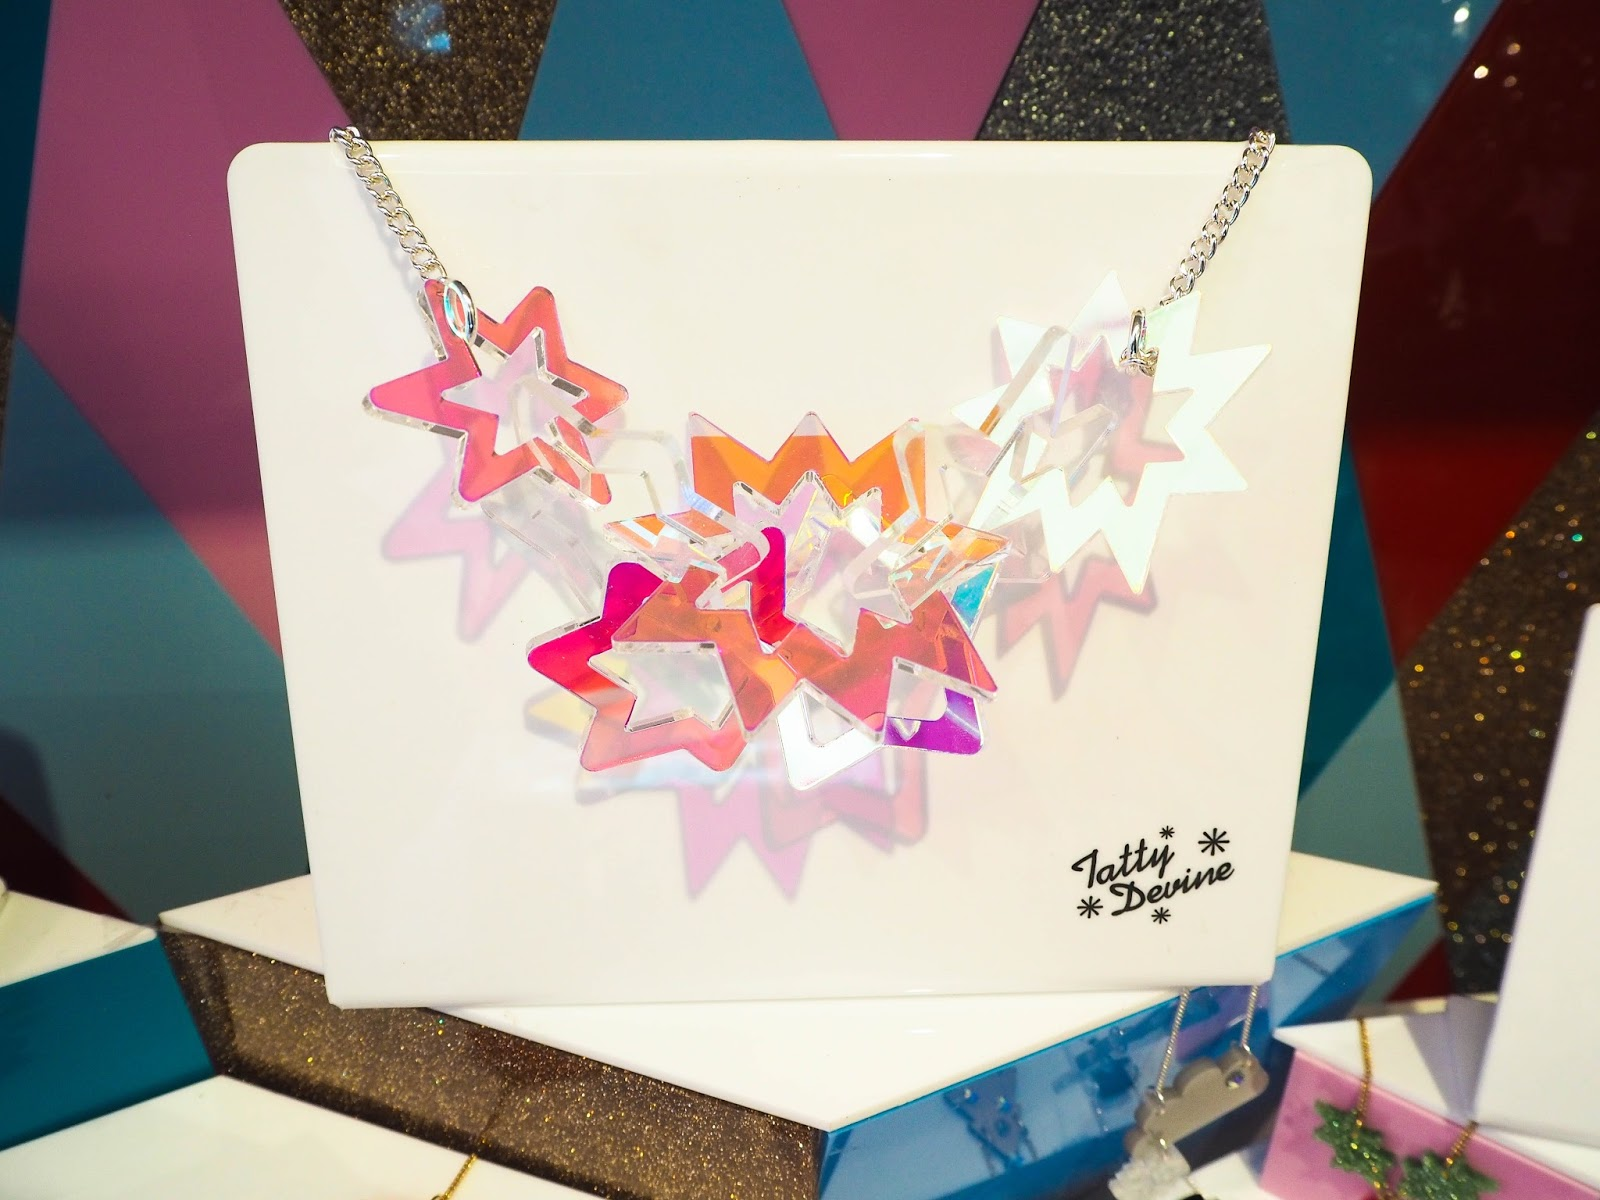 Tatty Devine starburst Christmas necklace